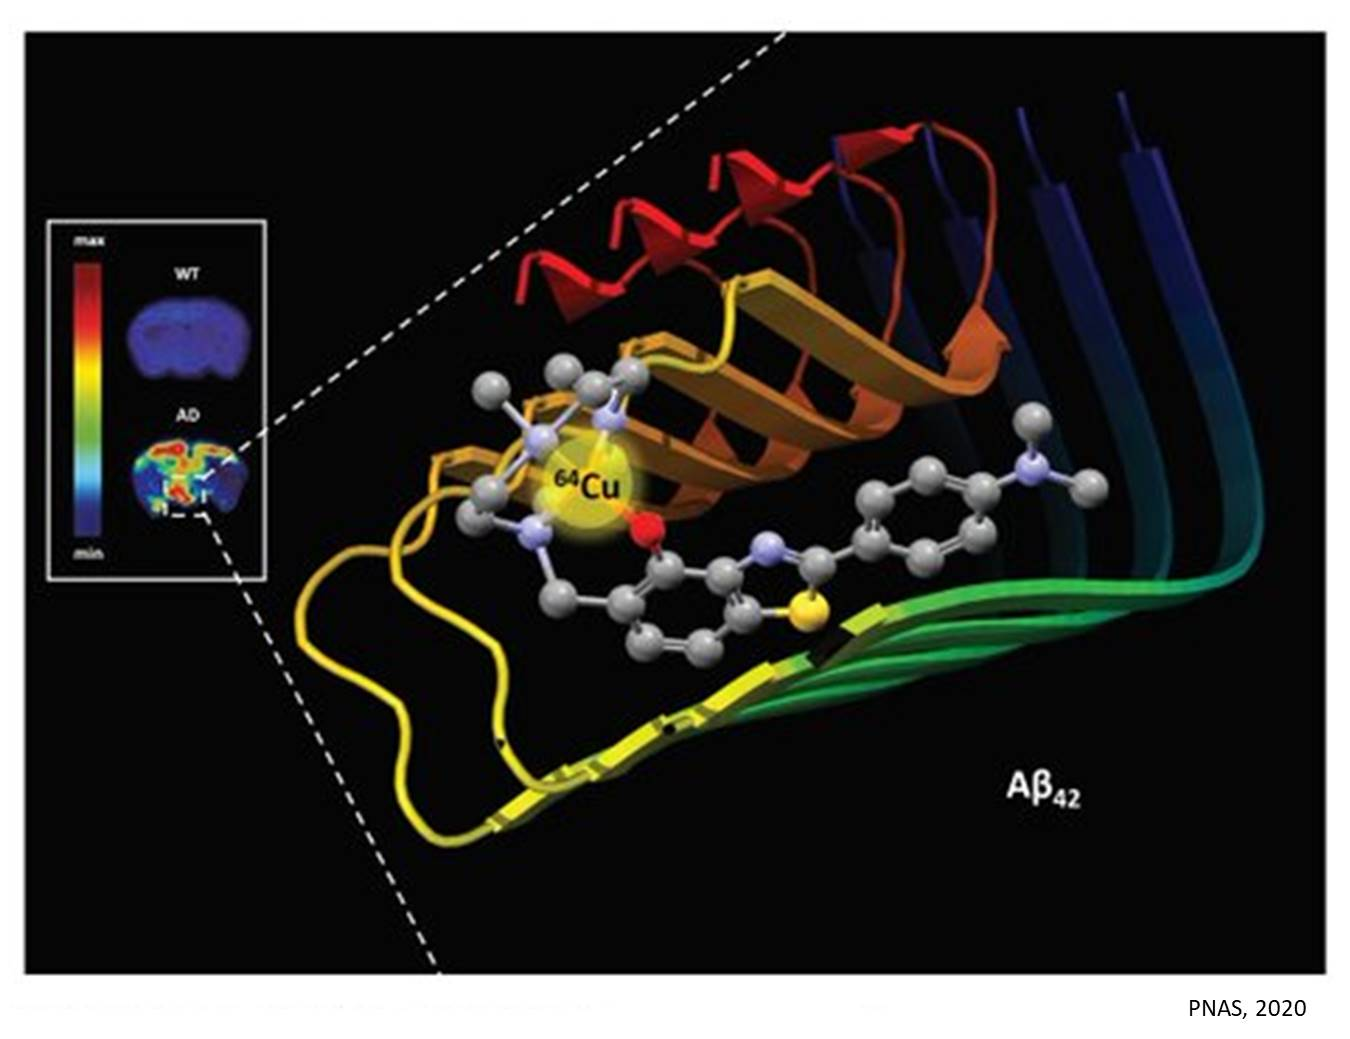 Imaging Alzheimer's amyloid aggregates in the brain using copper